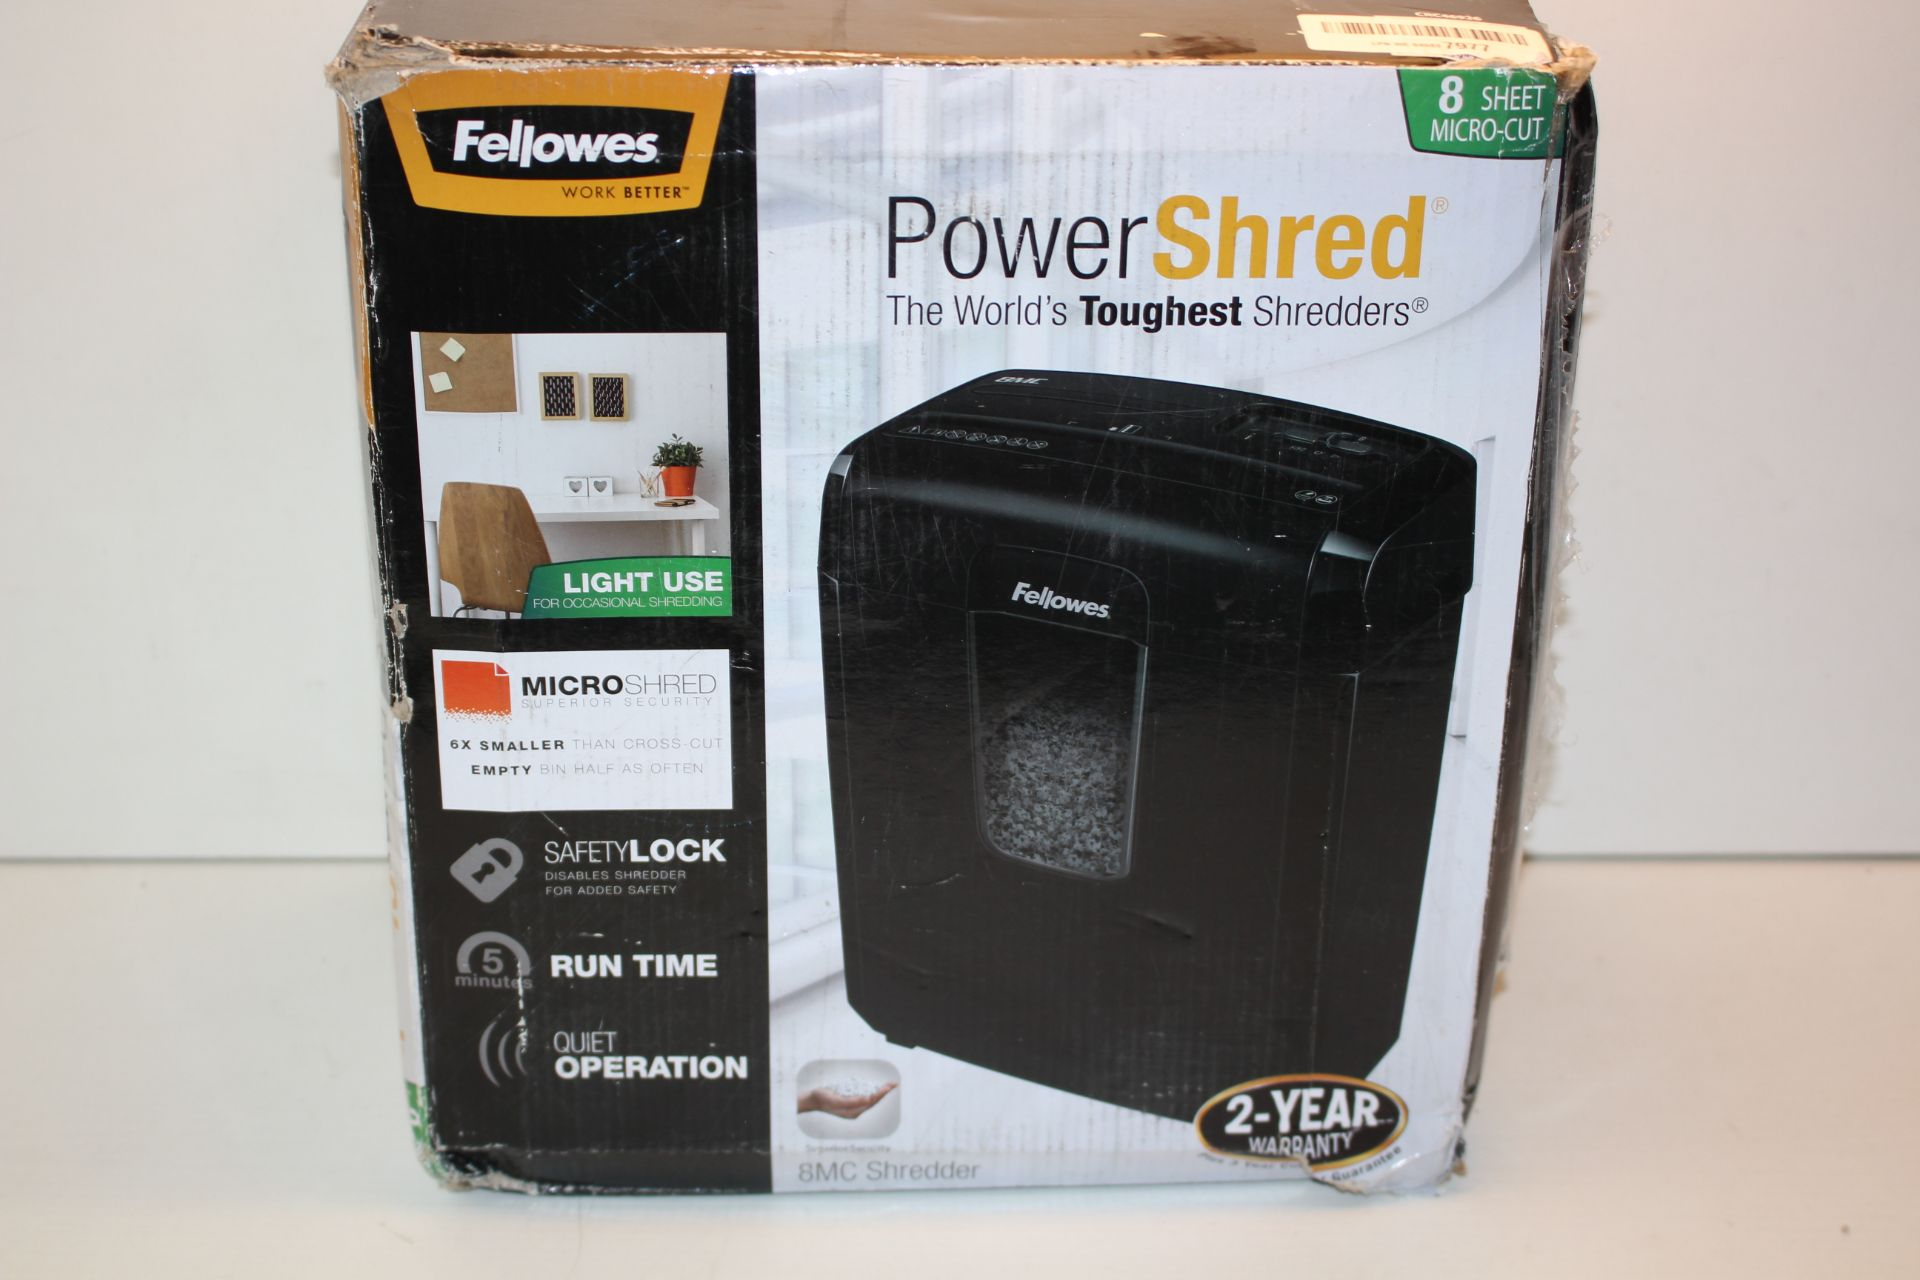 BOXED FELLOWES POWERSHRED 8MC SHREDDER RRP £45.99Condition ReportAppraisal Available on Request- All